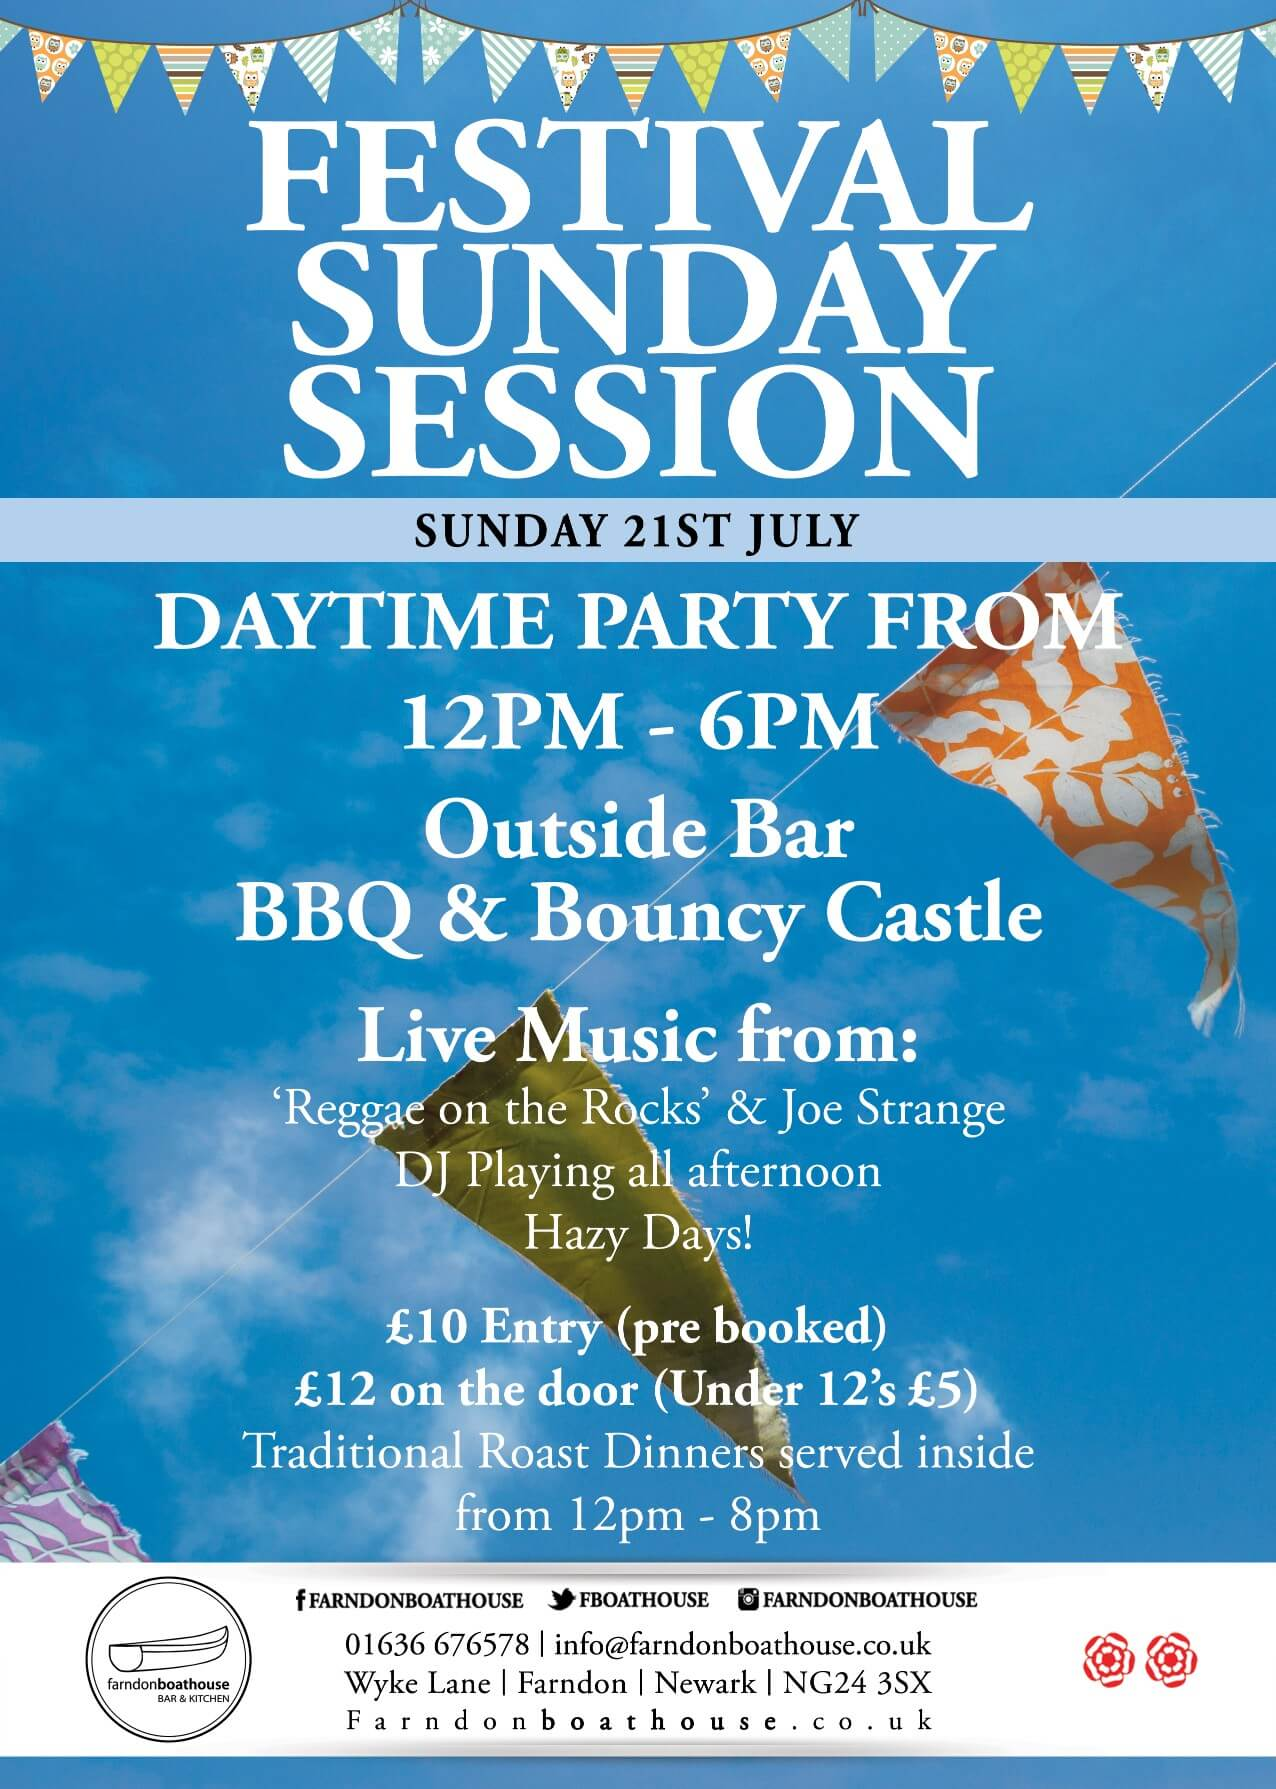 Festival Sunday Session